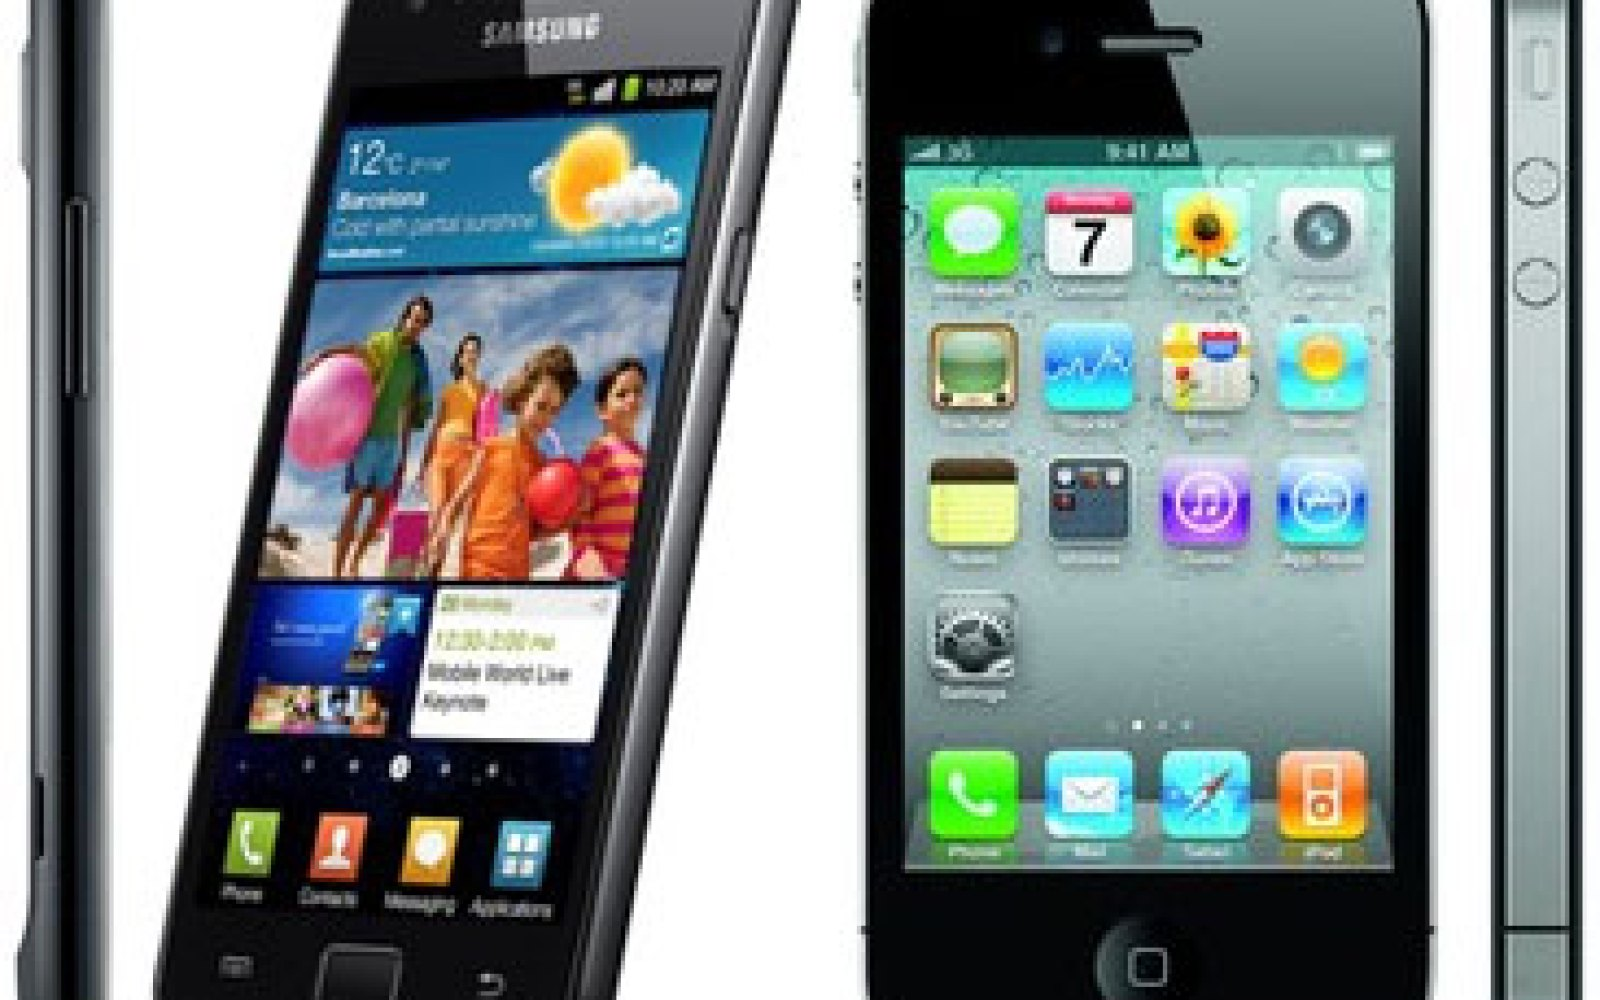 Dutch appeals court upholds ban on Samsung Galaxy S II and Galaxy Ace